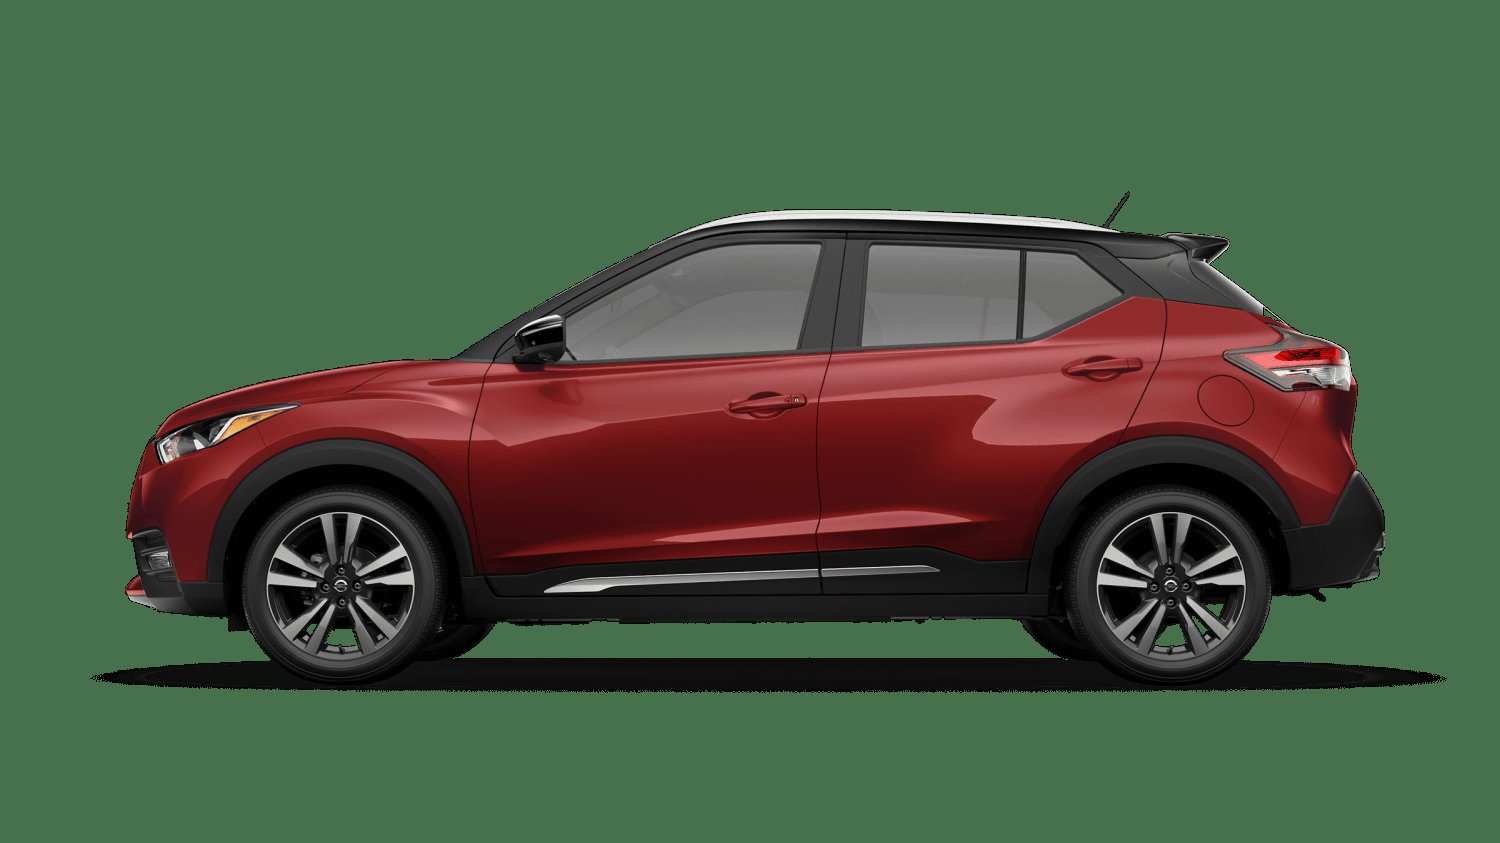 Latest Explora El Nuevo Nissan Kicks 2018 Nissan Usa Free Download